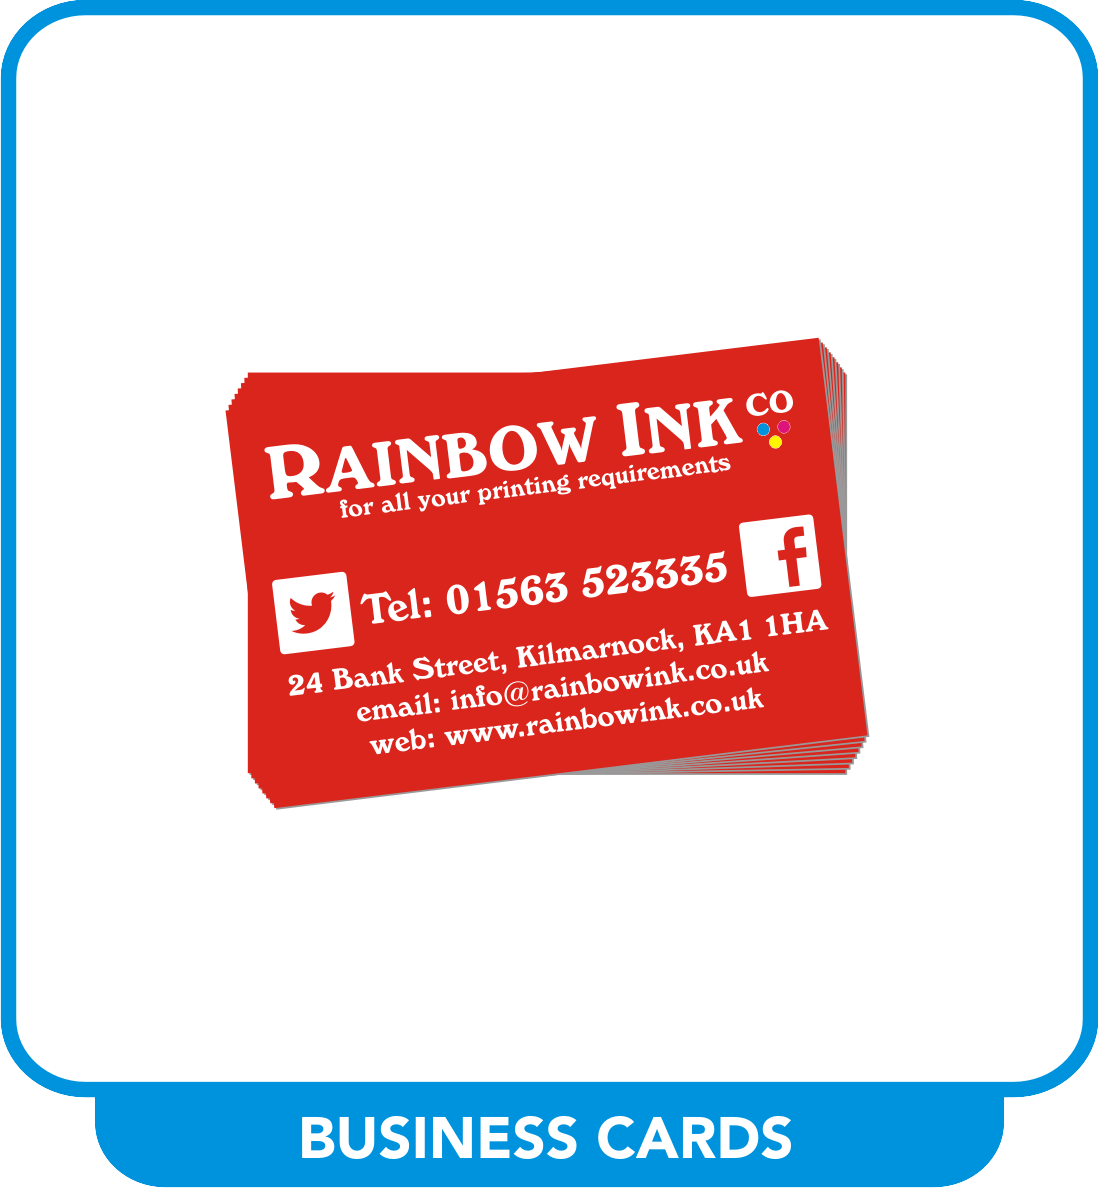 Business Cards & Stationery – Rainbow Ink